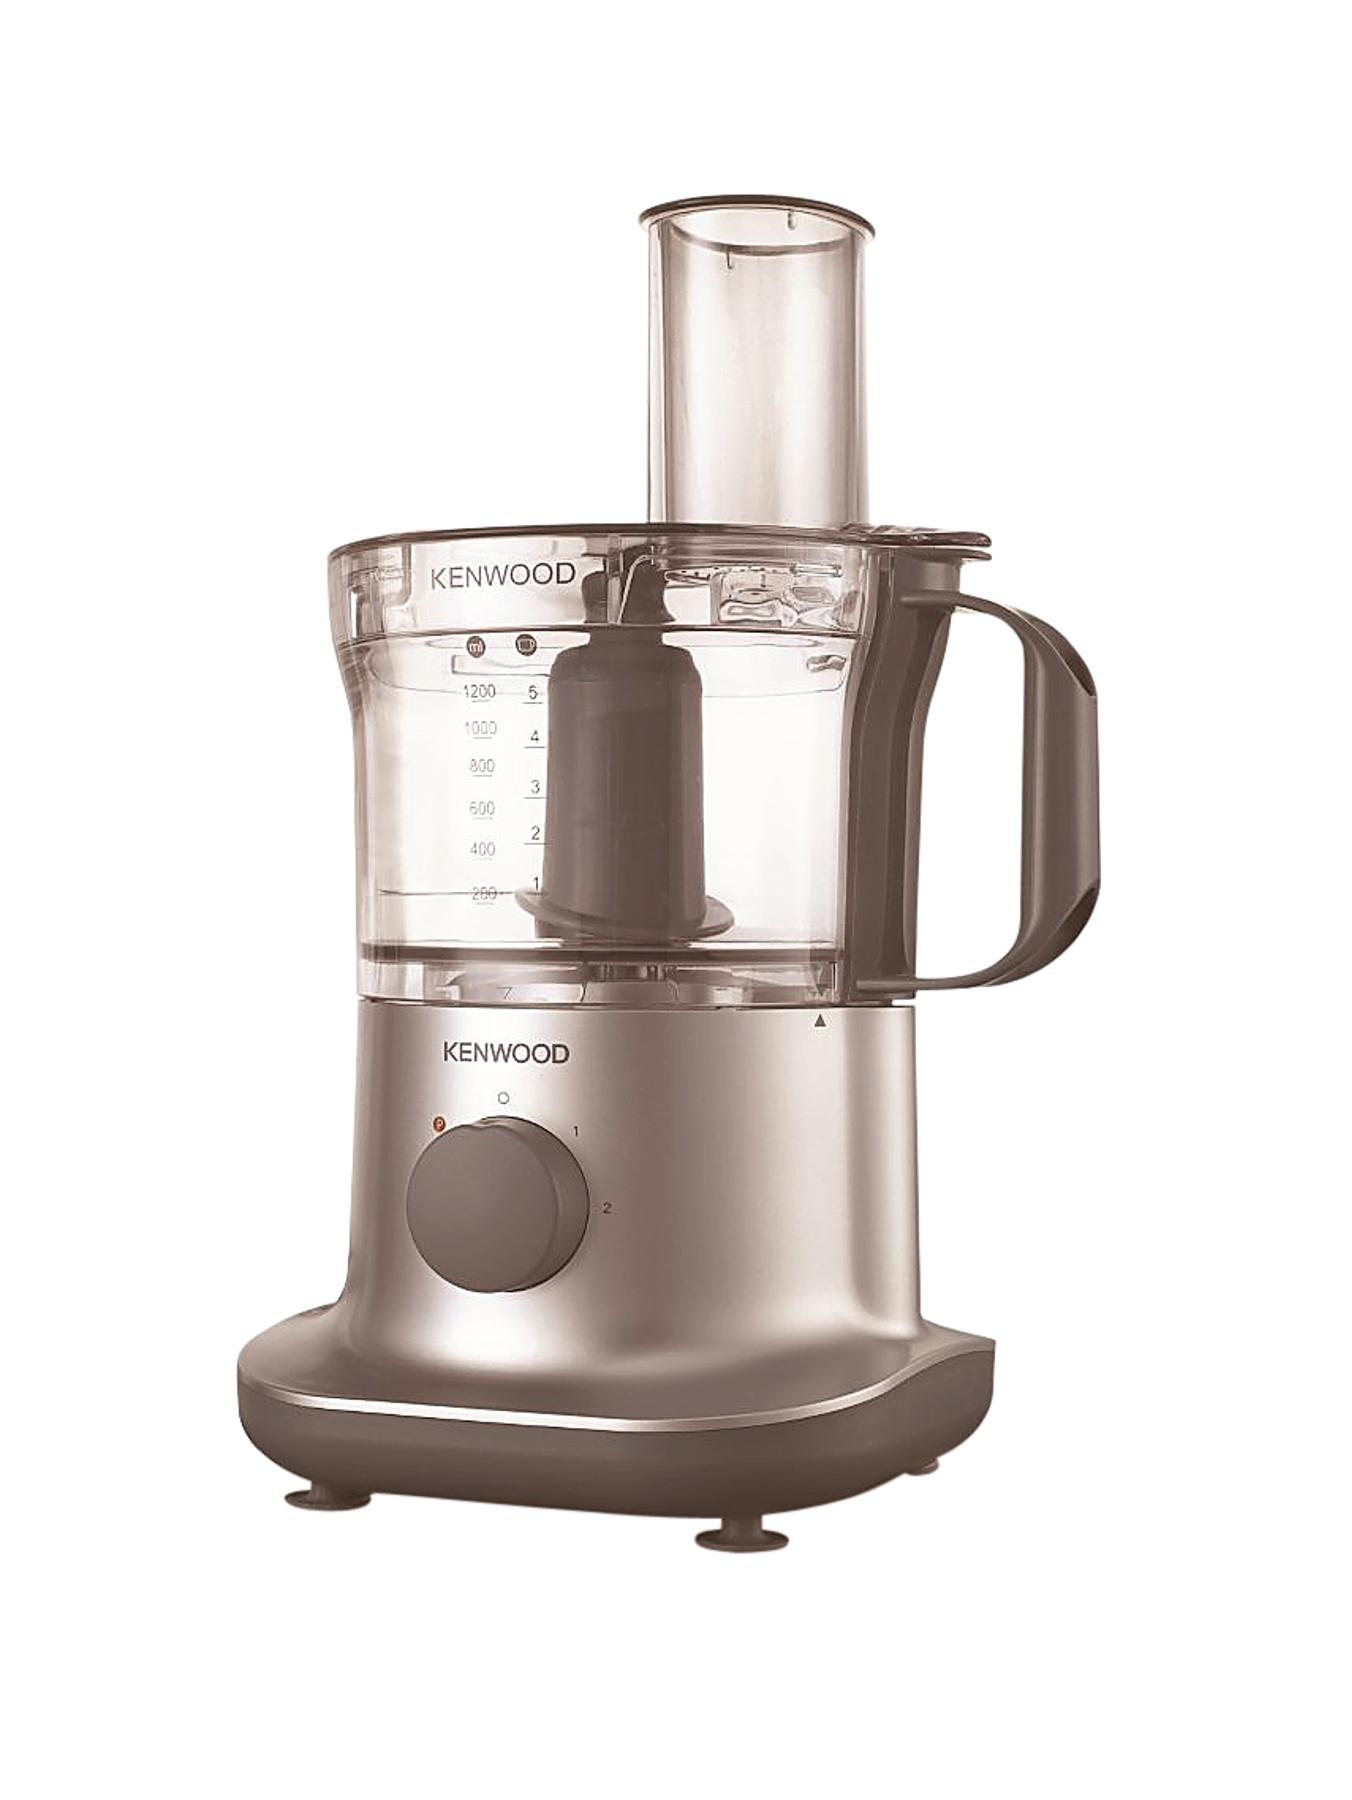 FPP215 750-watt Food Processor - Silver